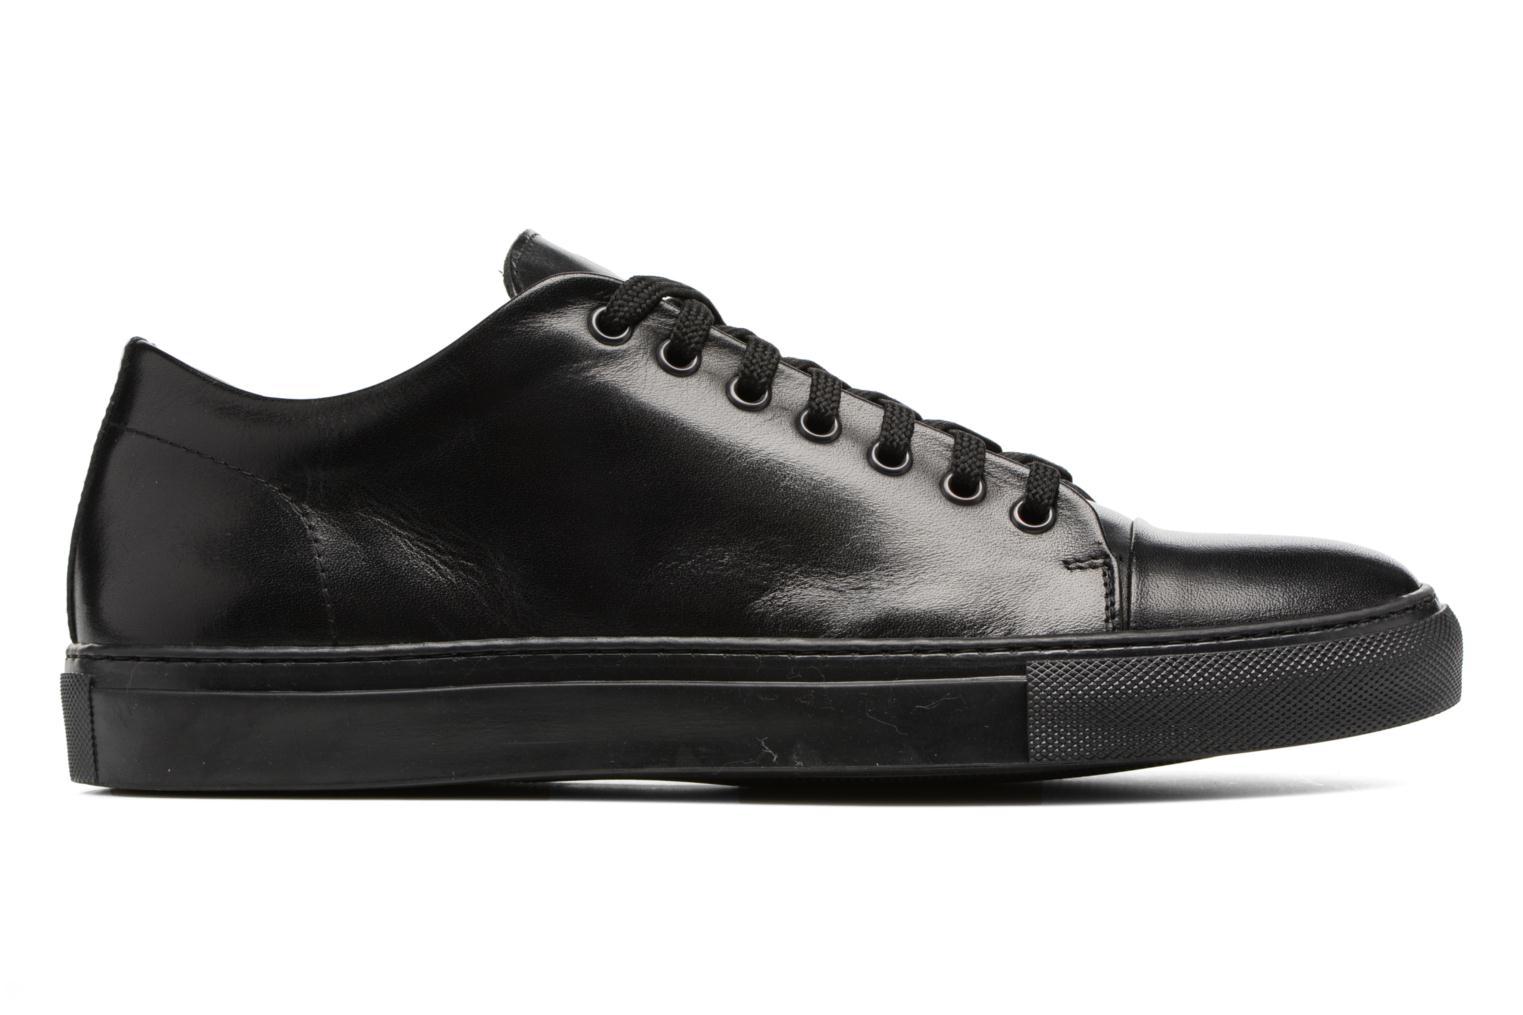 Marques Chaussure homme Mr SARENZA homme Doubia Nero